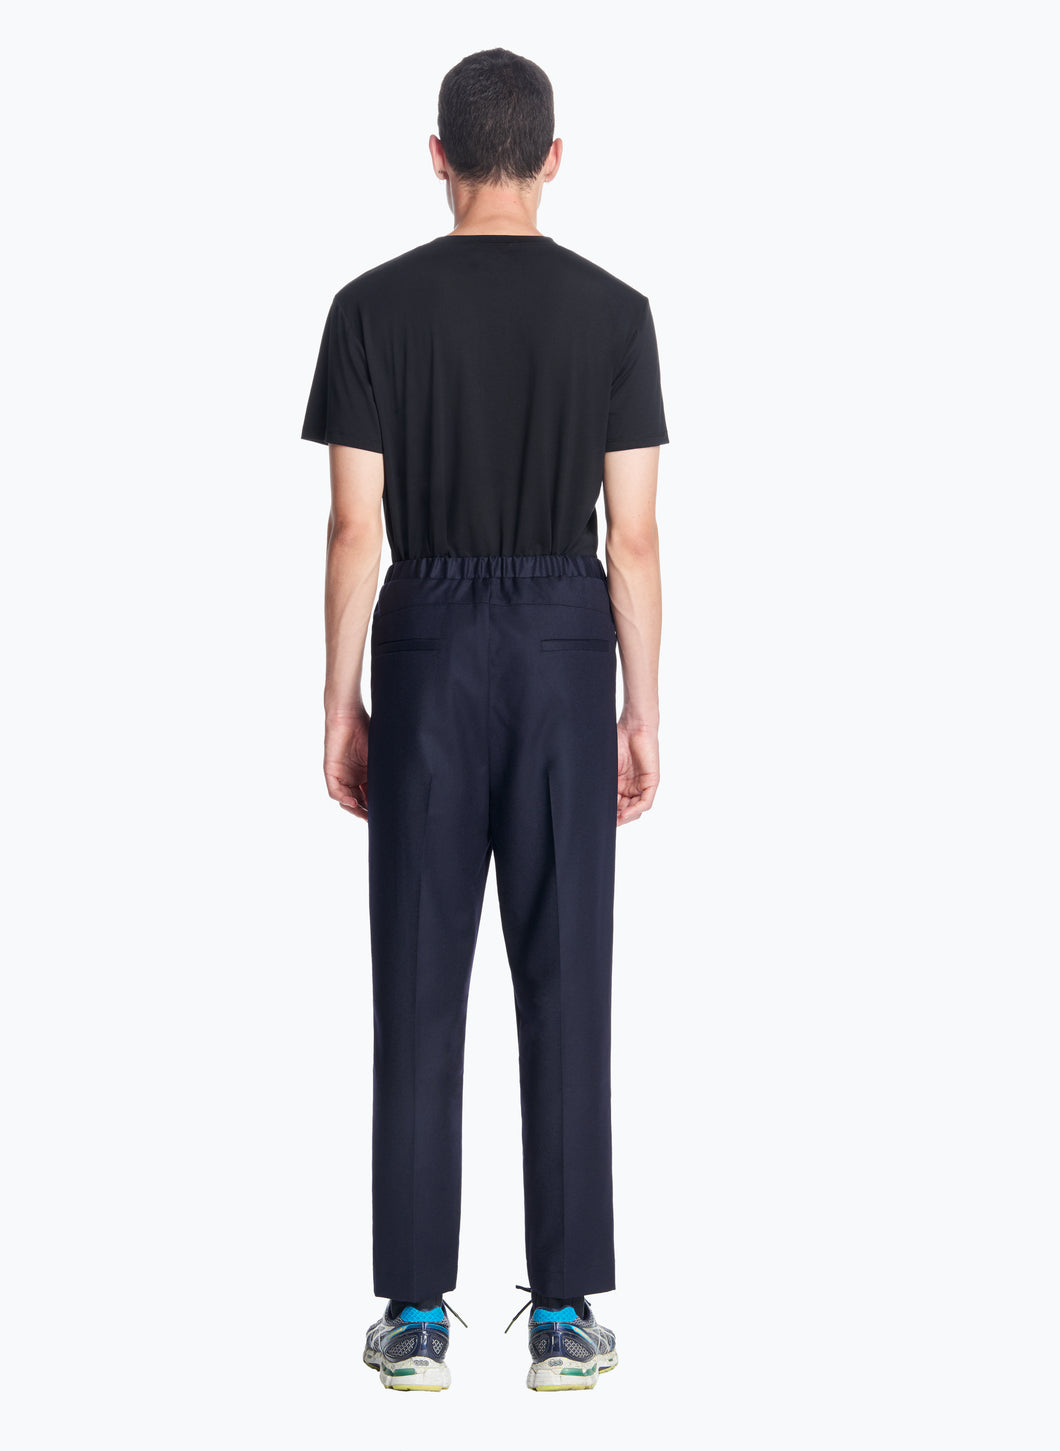 Elastic Waist Pants with Deep Pleats in Navy Blue Flannel Wool